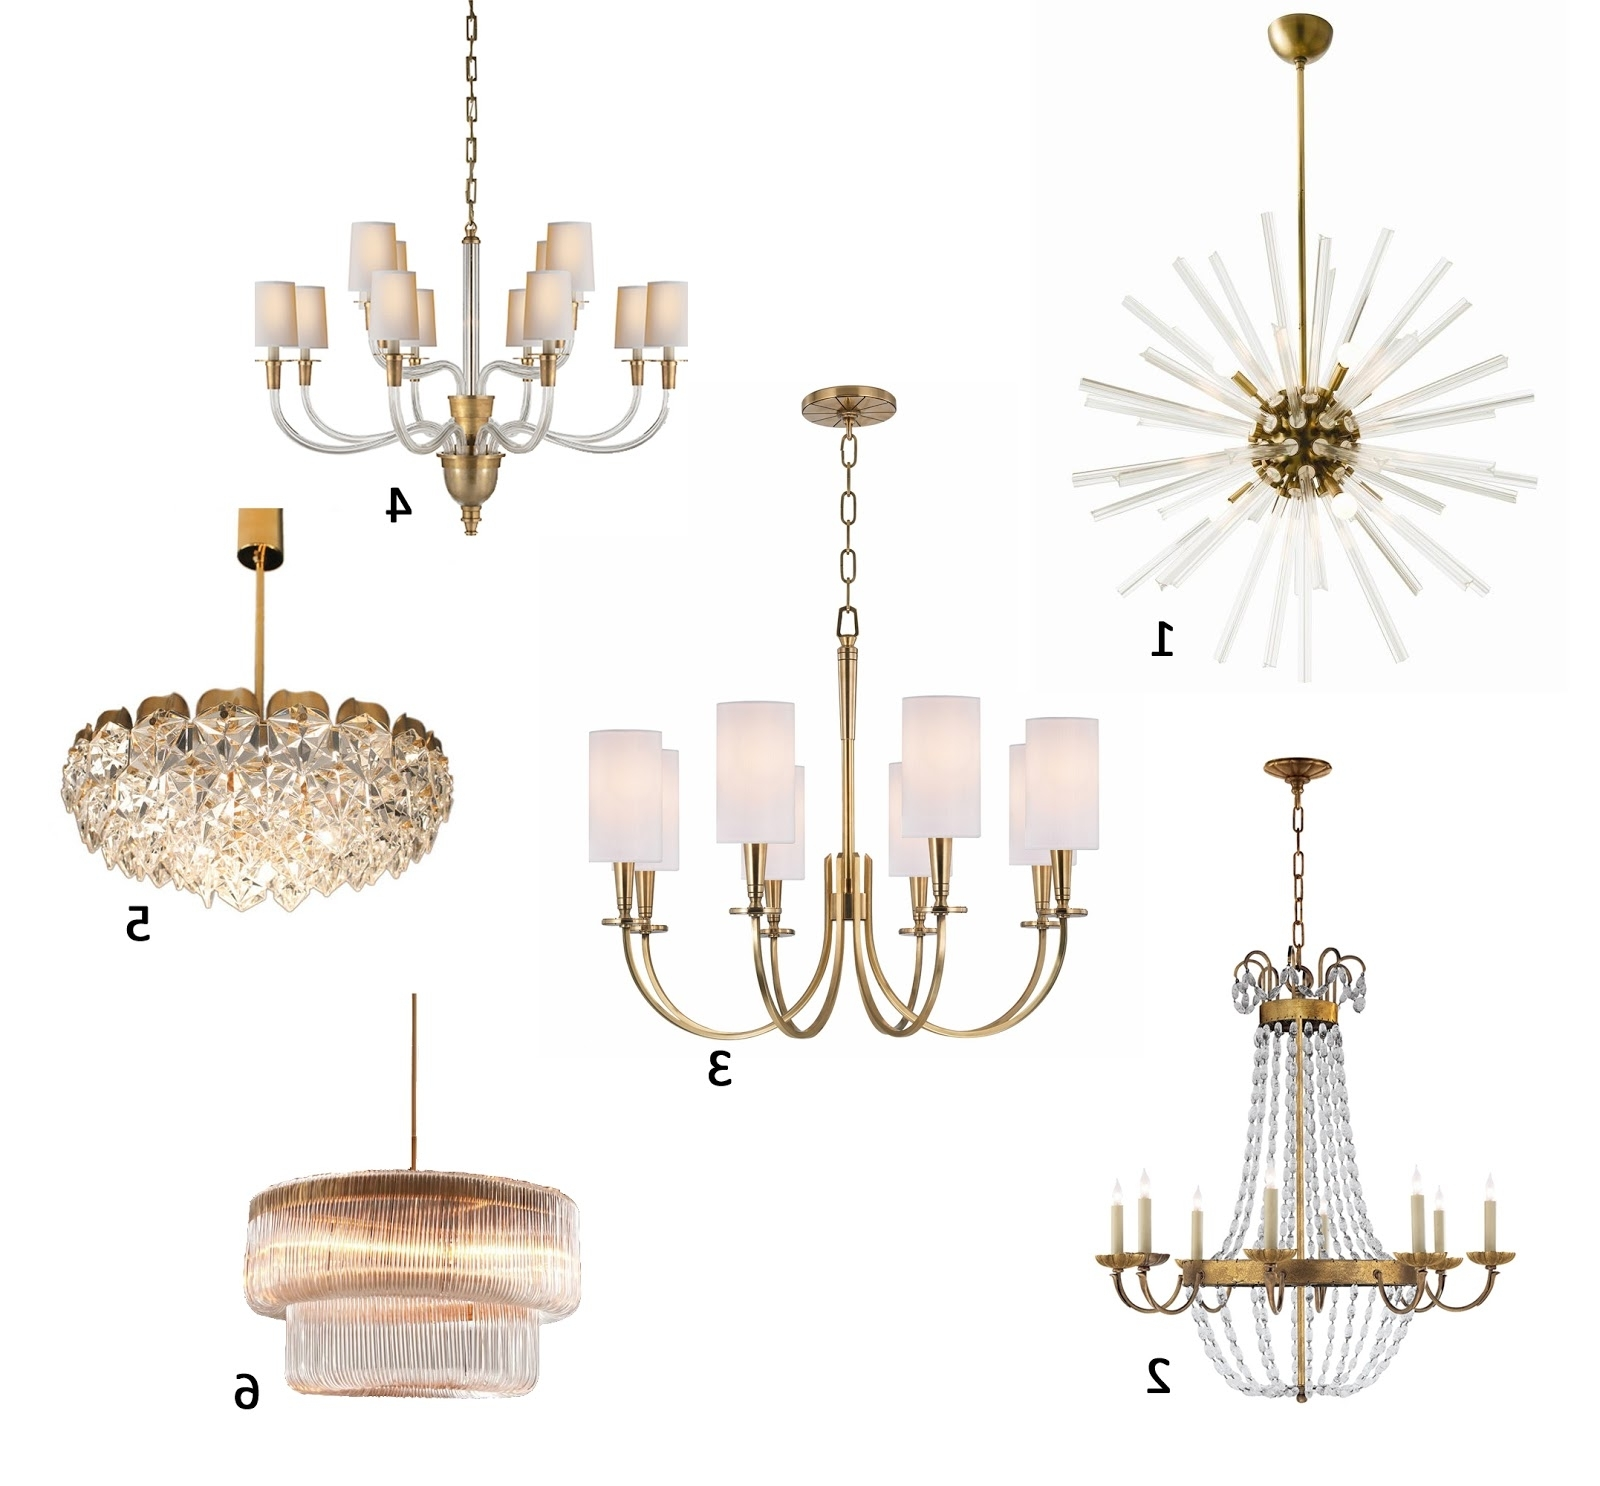 Recent Traditional Brass Chandeliers Pertaining To Am Dolce Vita: A Roundup Of My Favourite Brass Chandeliers (View 9 of 15)